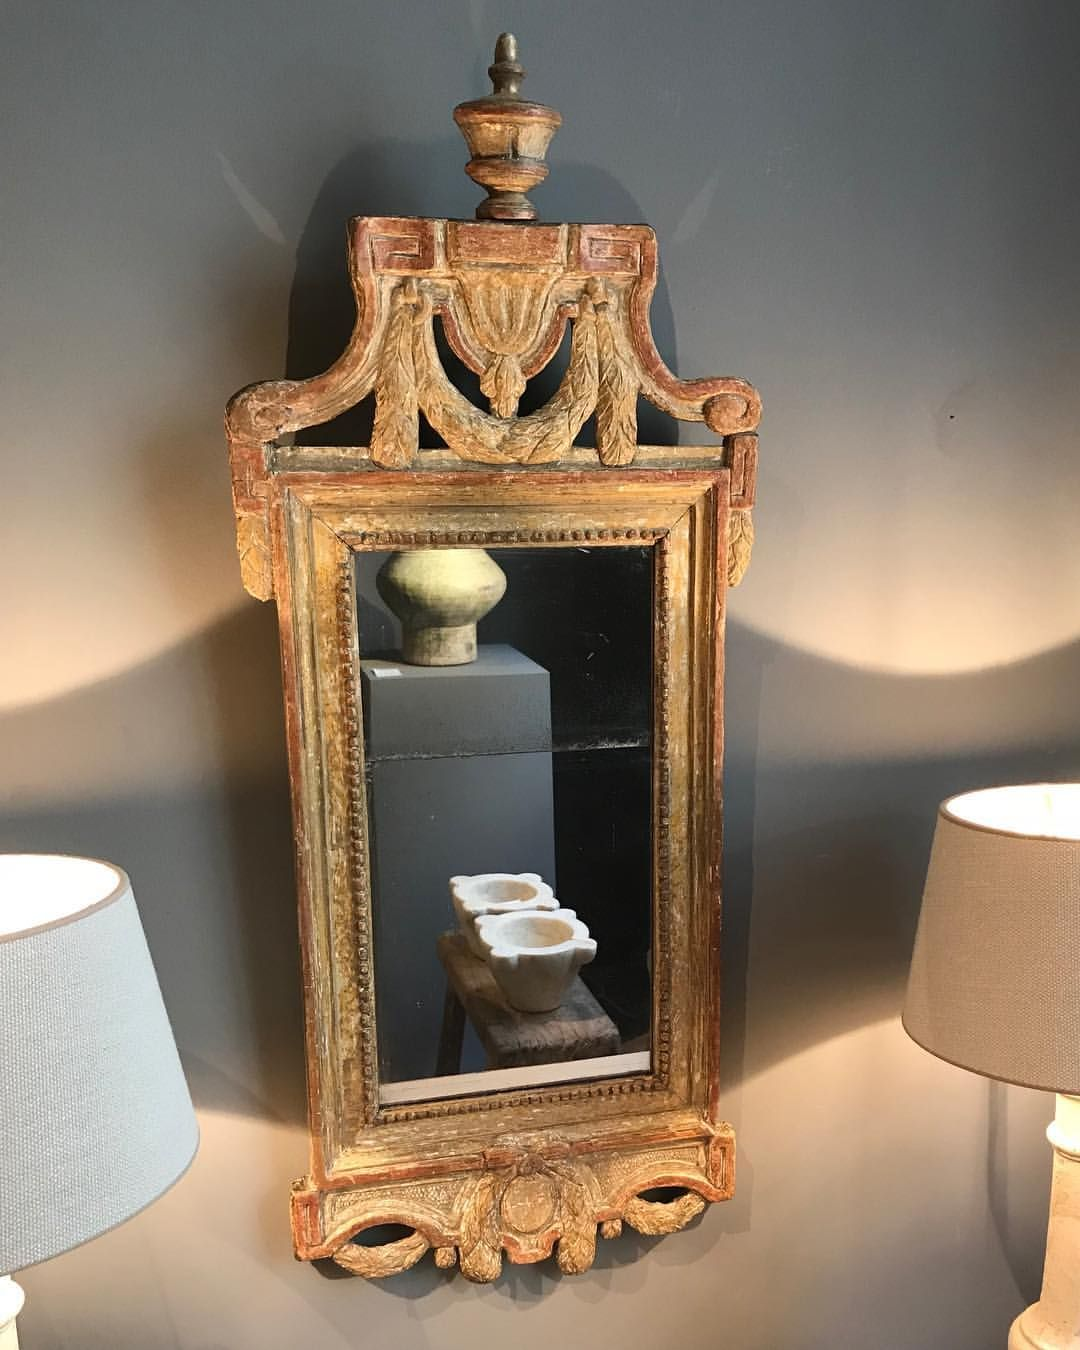 Swedish period gustavian mirror with its original gilding